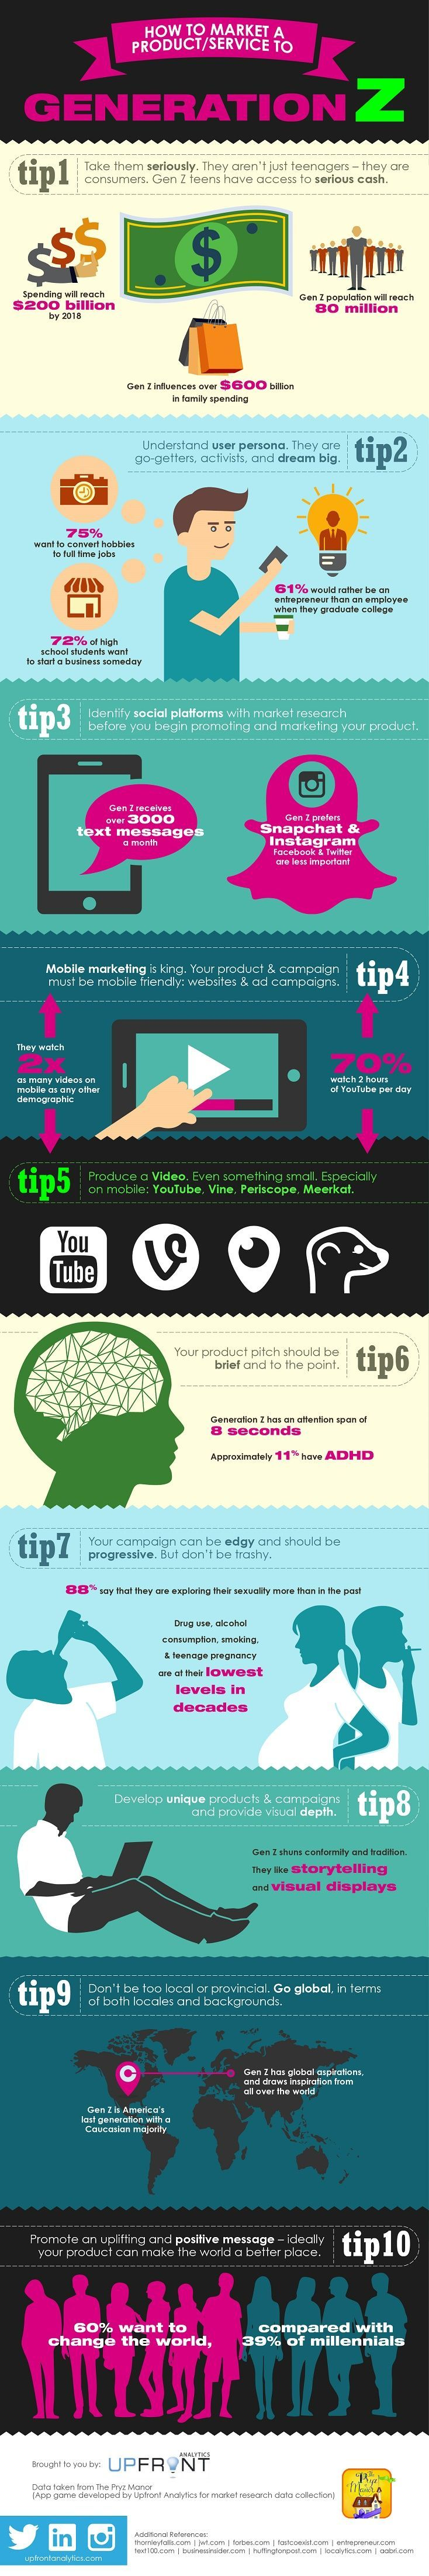 18 best Generation Z images on Pinterest | Technology, Career and ...